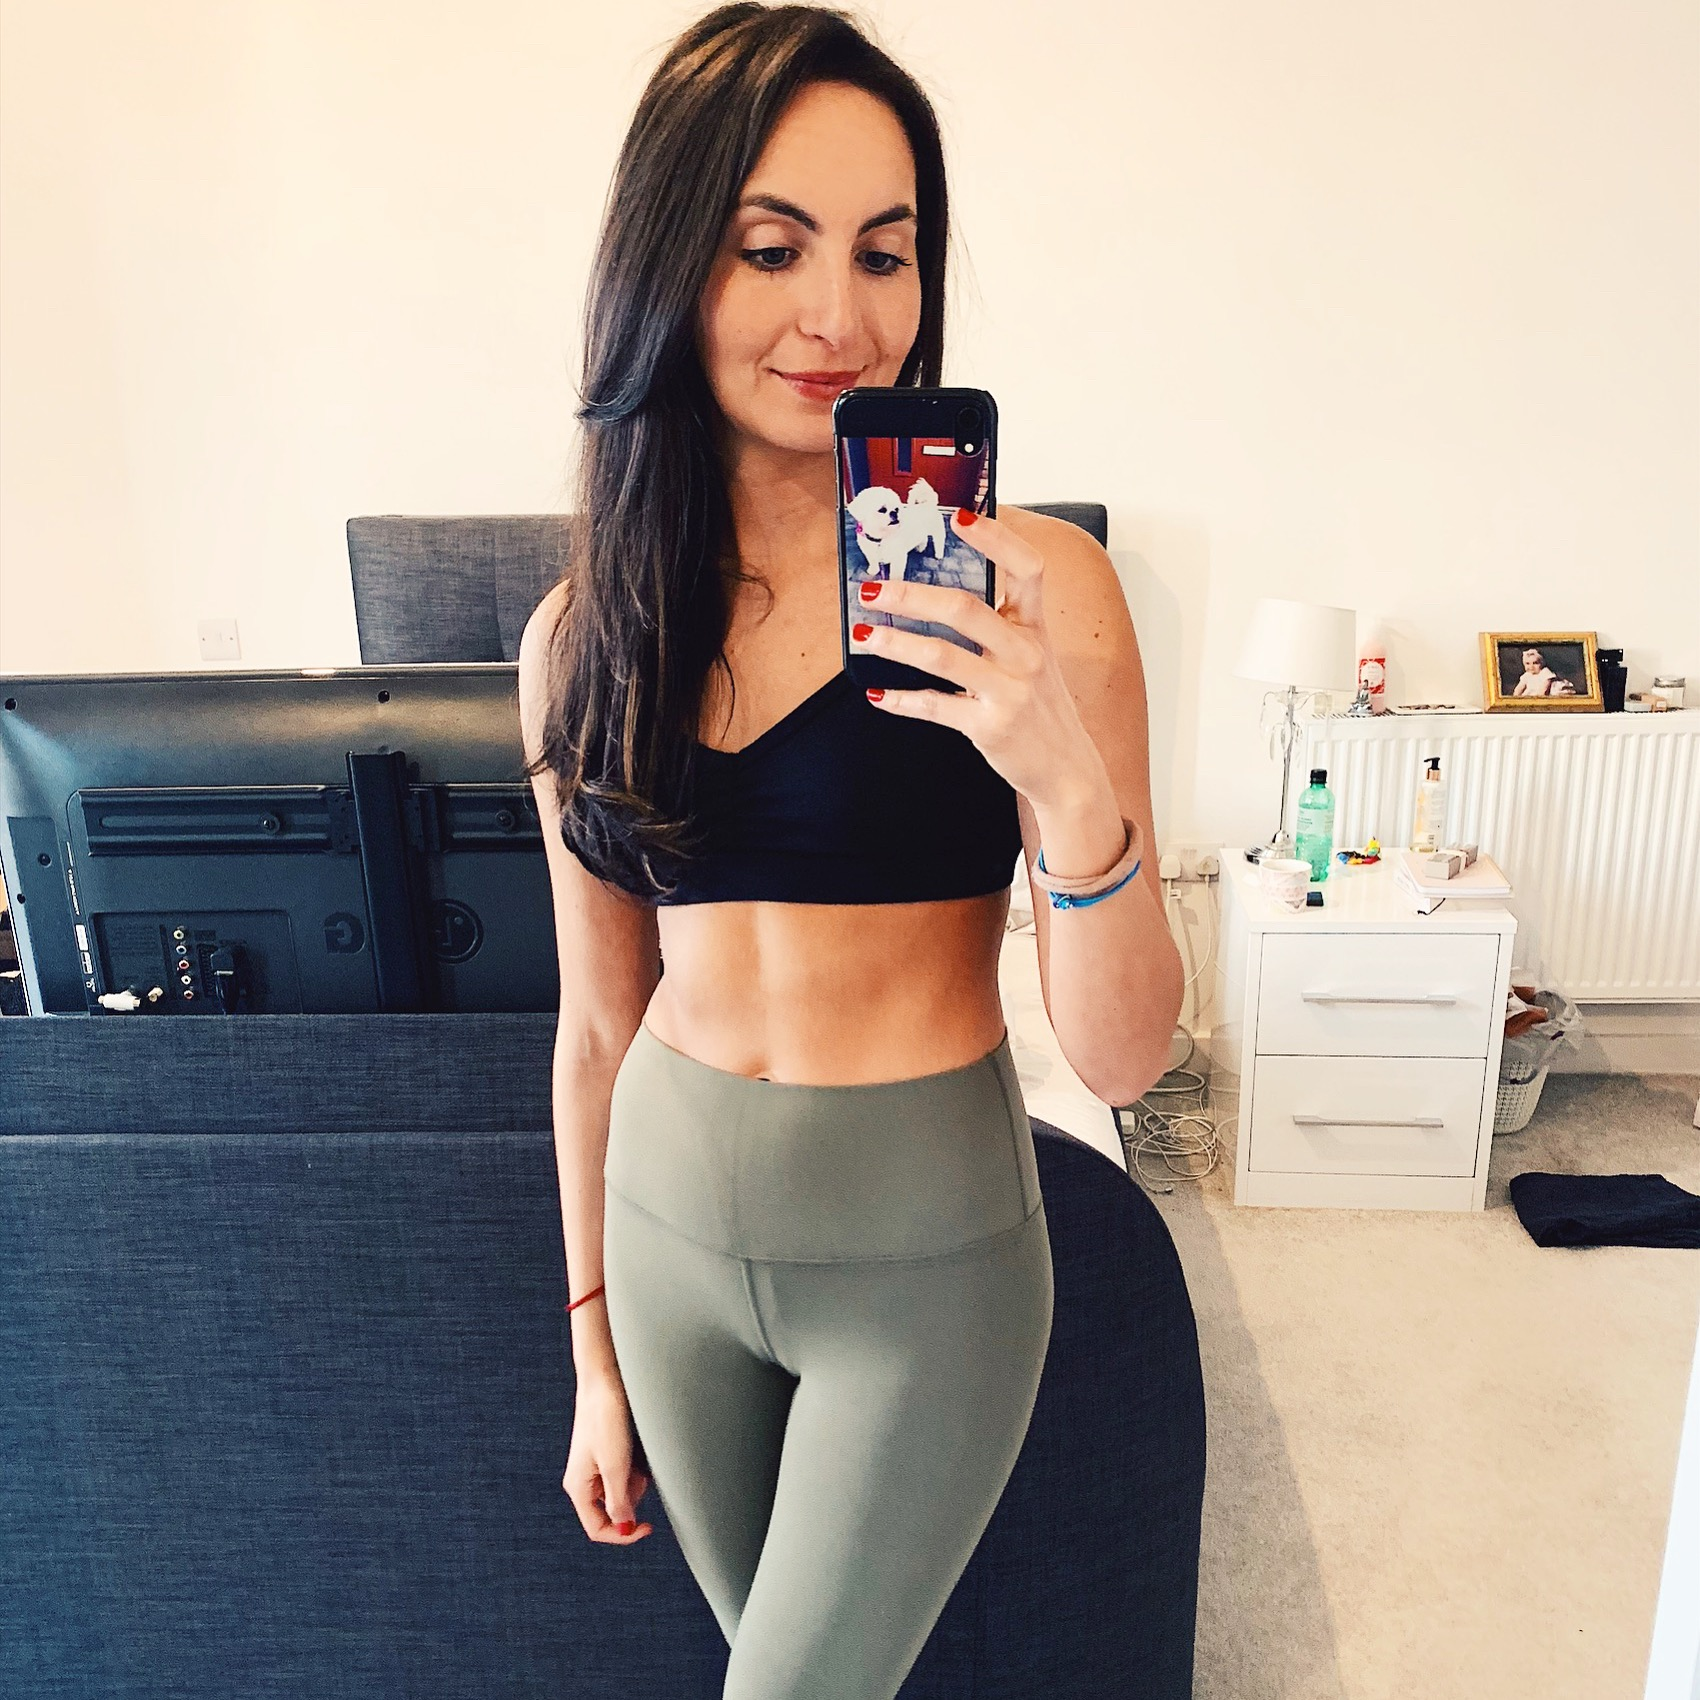 #katieonesday - Food and FitnessFind me: Instagram